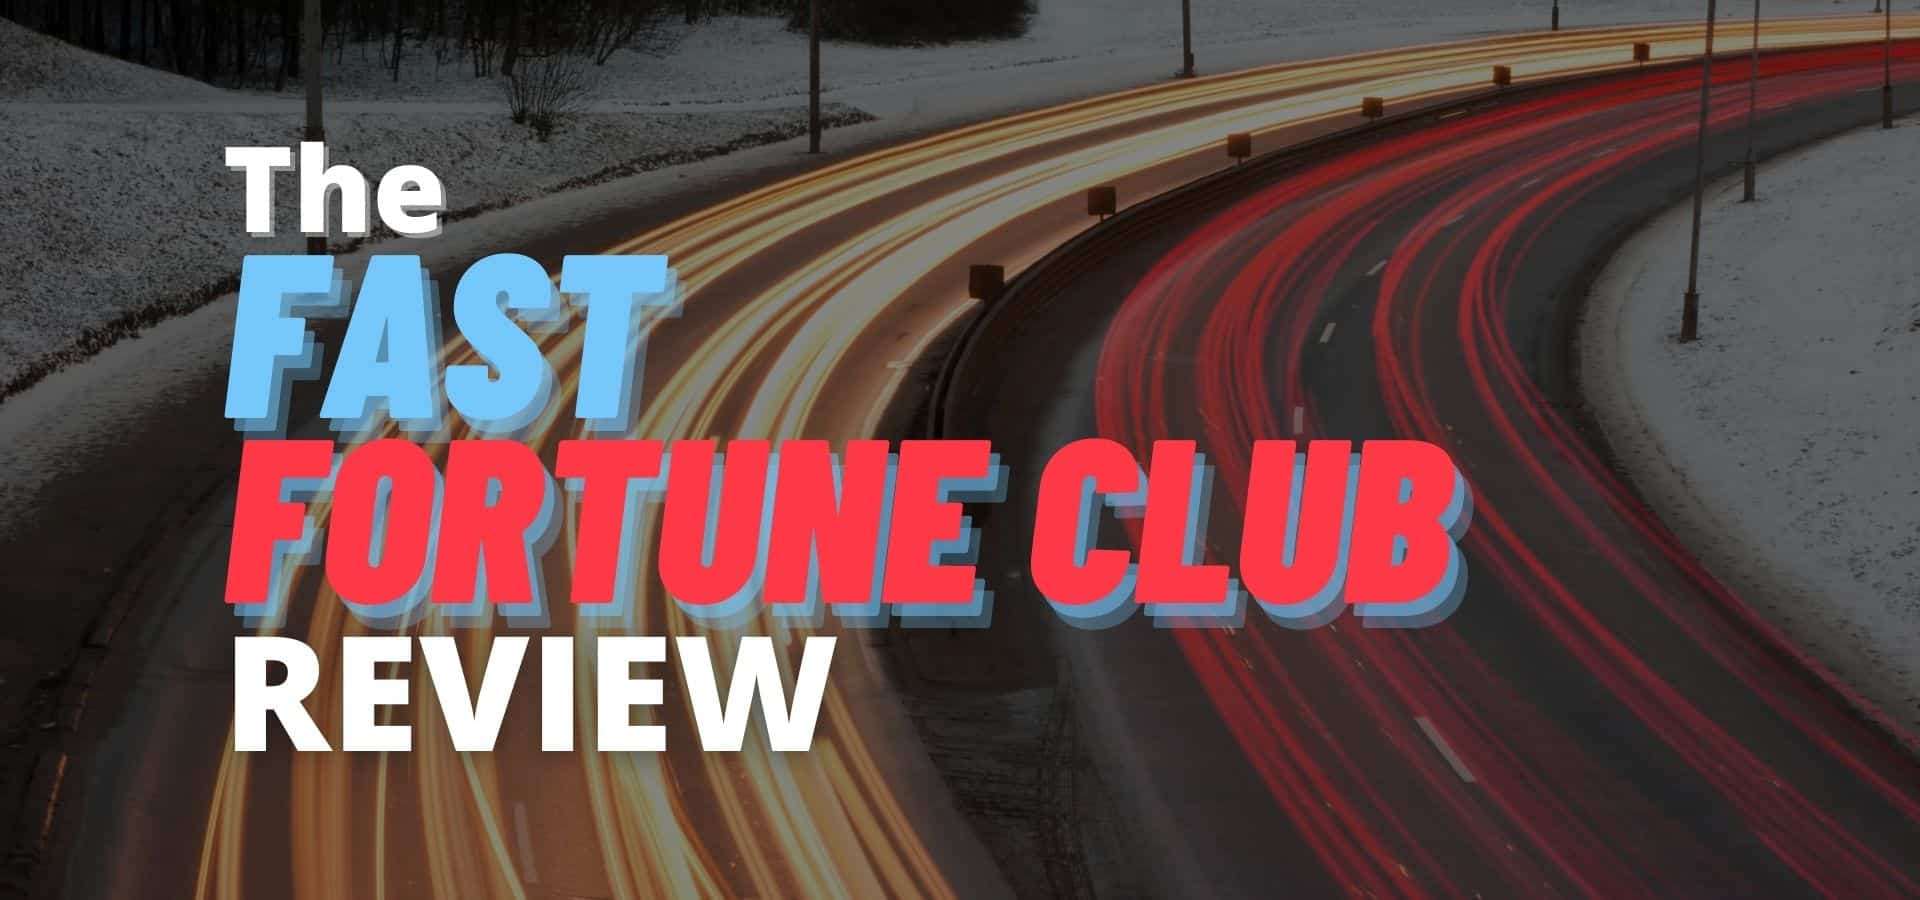 Fast Fortune Club Review: Buy or Sell this Tom Gentile Research Service?